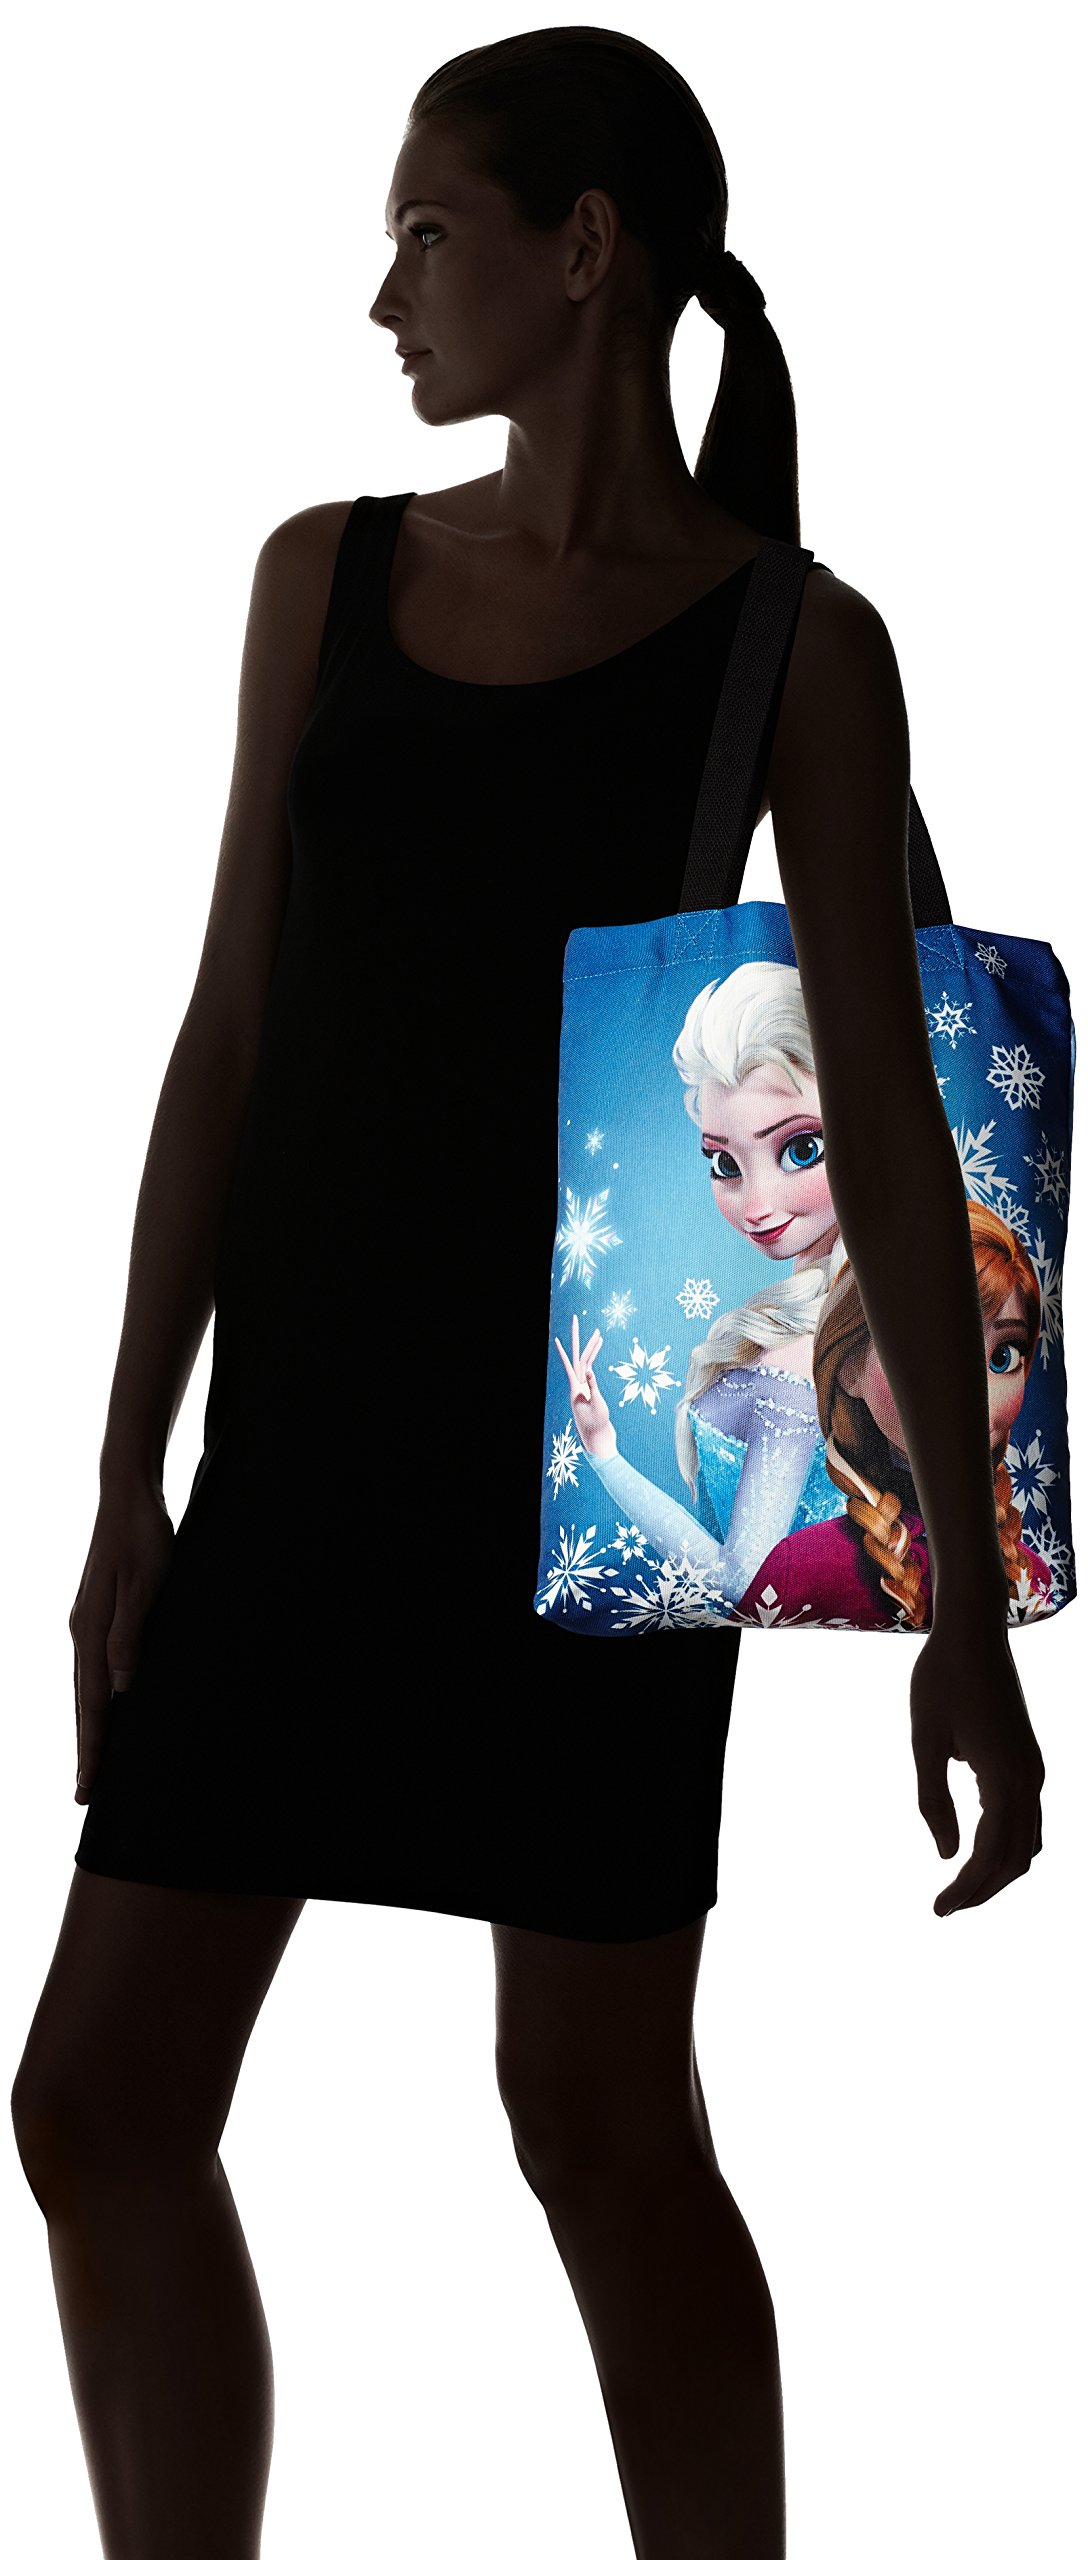 Concept One Handbags Frozen Anna and Elsa Sublimation Print Shoulder Bag, Royal, One Size by Concept One Handbags (Image #6)